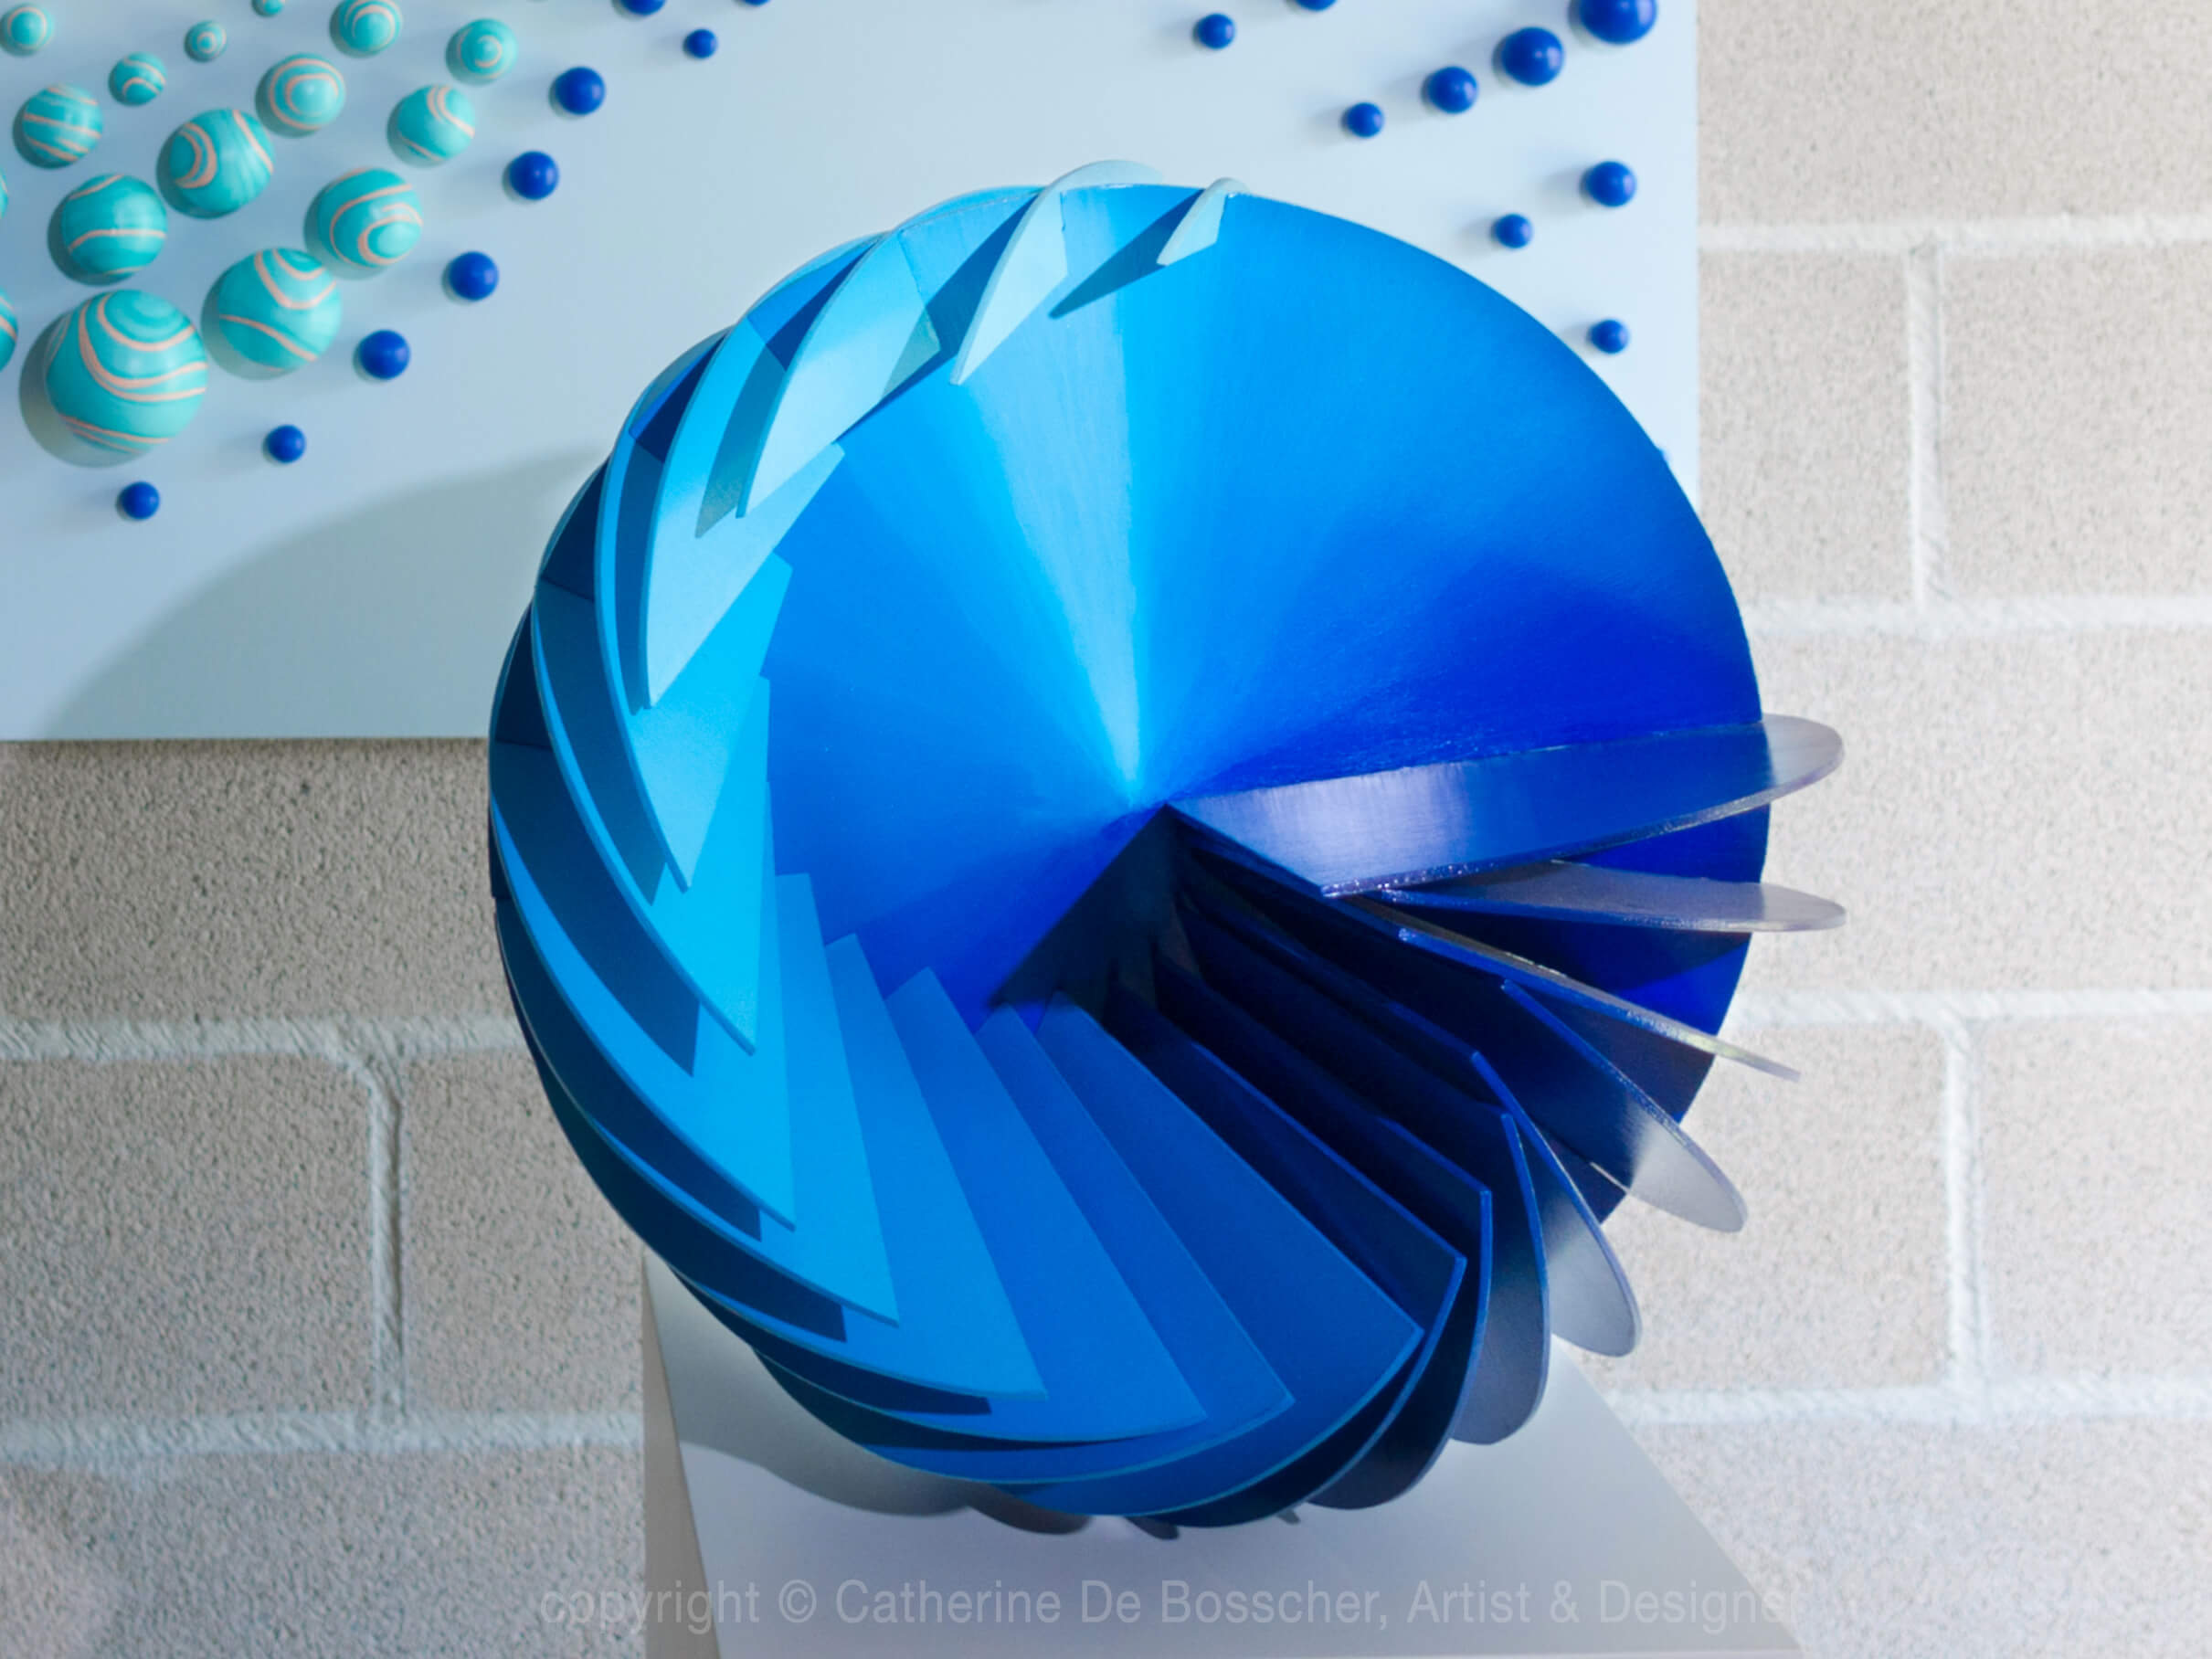 Sculpture SPHERICAL WAVE 40 cm by Catherine De Bosscher